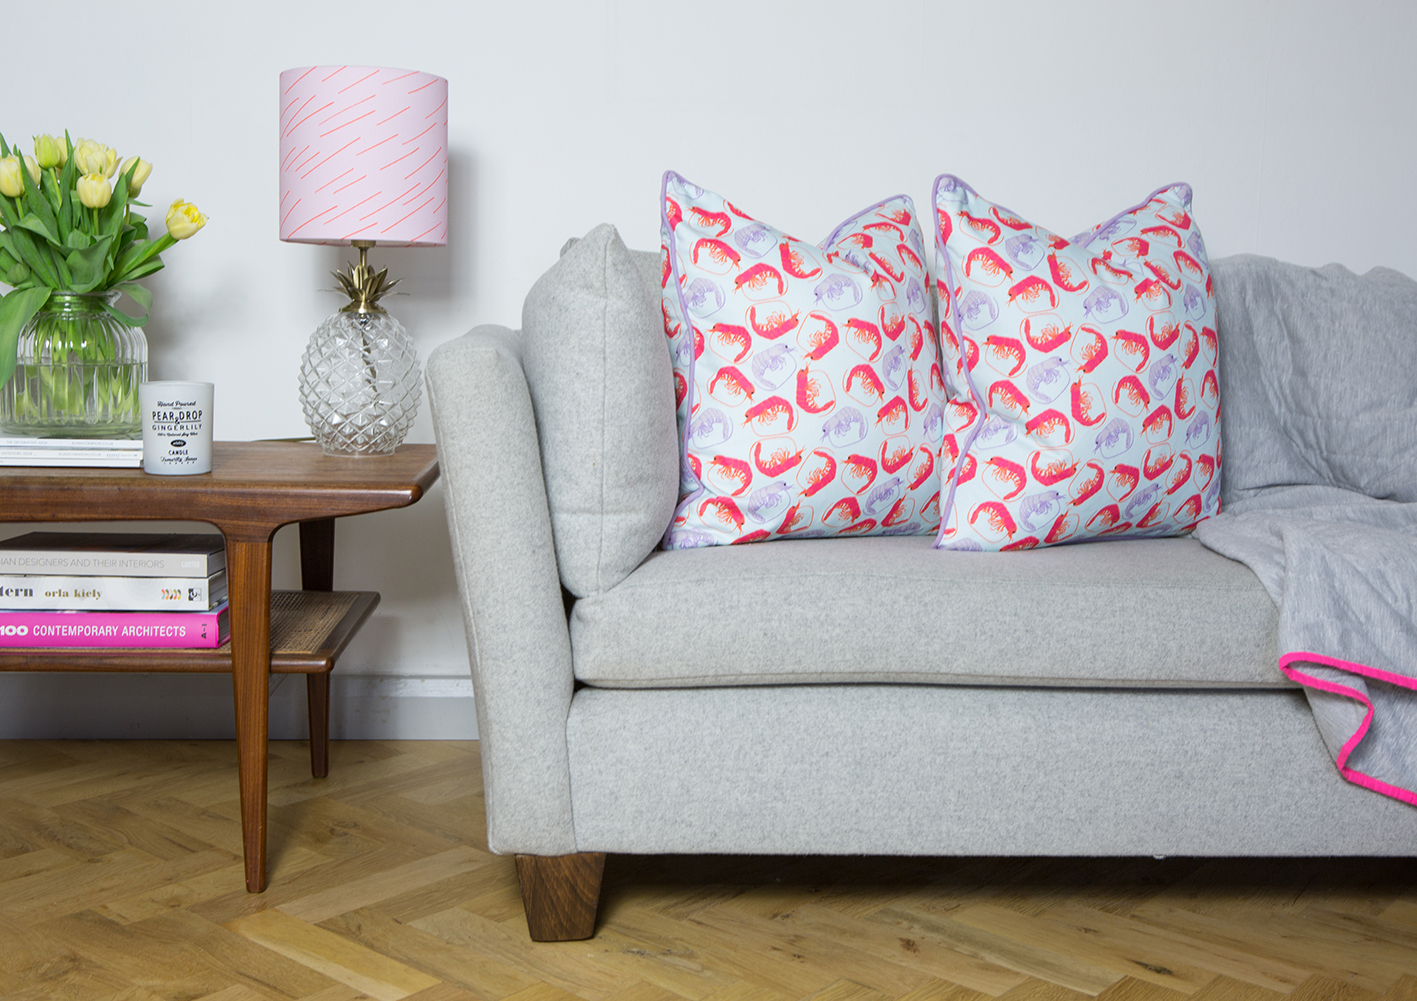 website Prawn cushion styled.jpg